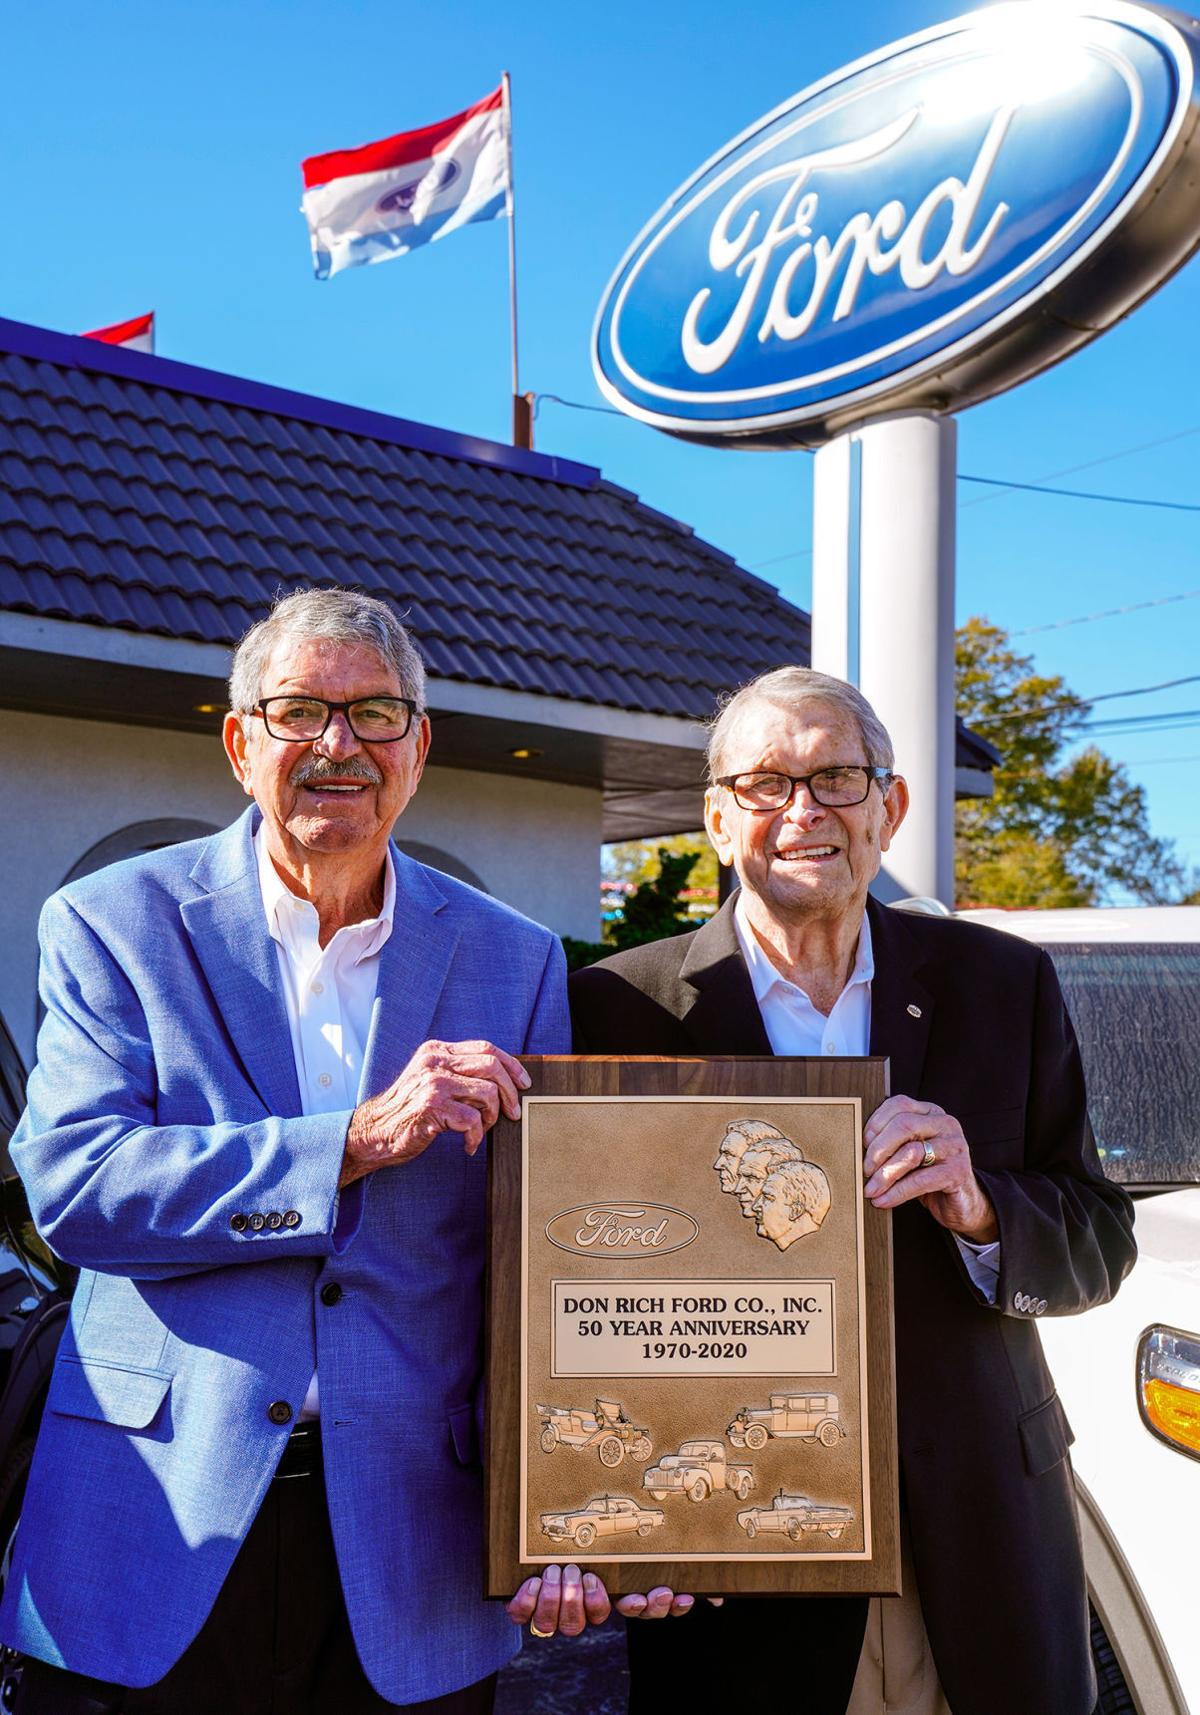 Don Rich Ford owners celebrating 50 years in business